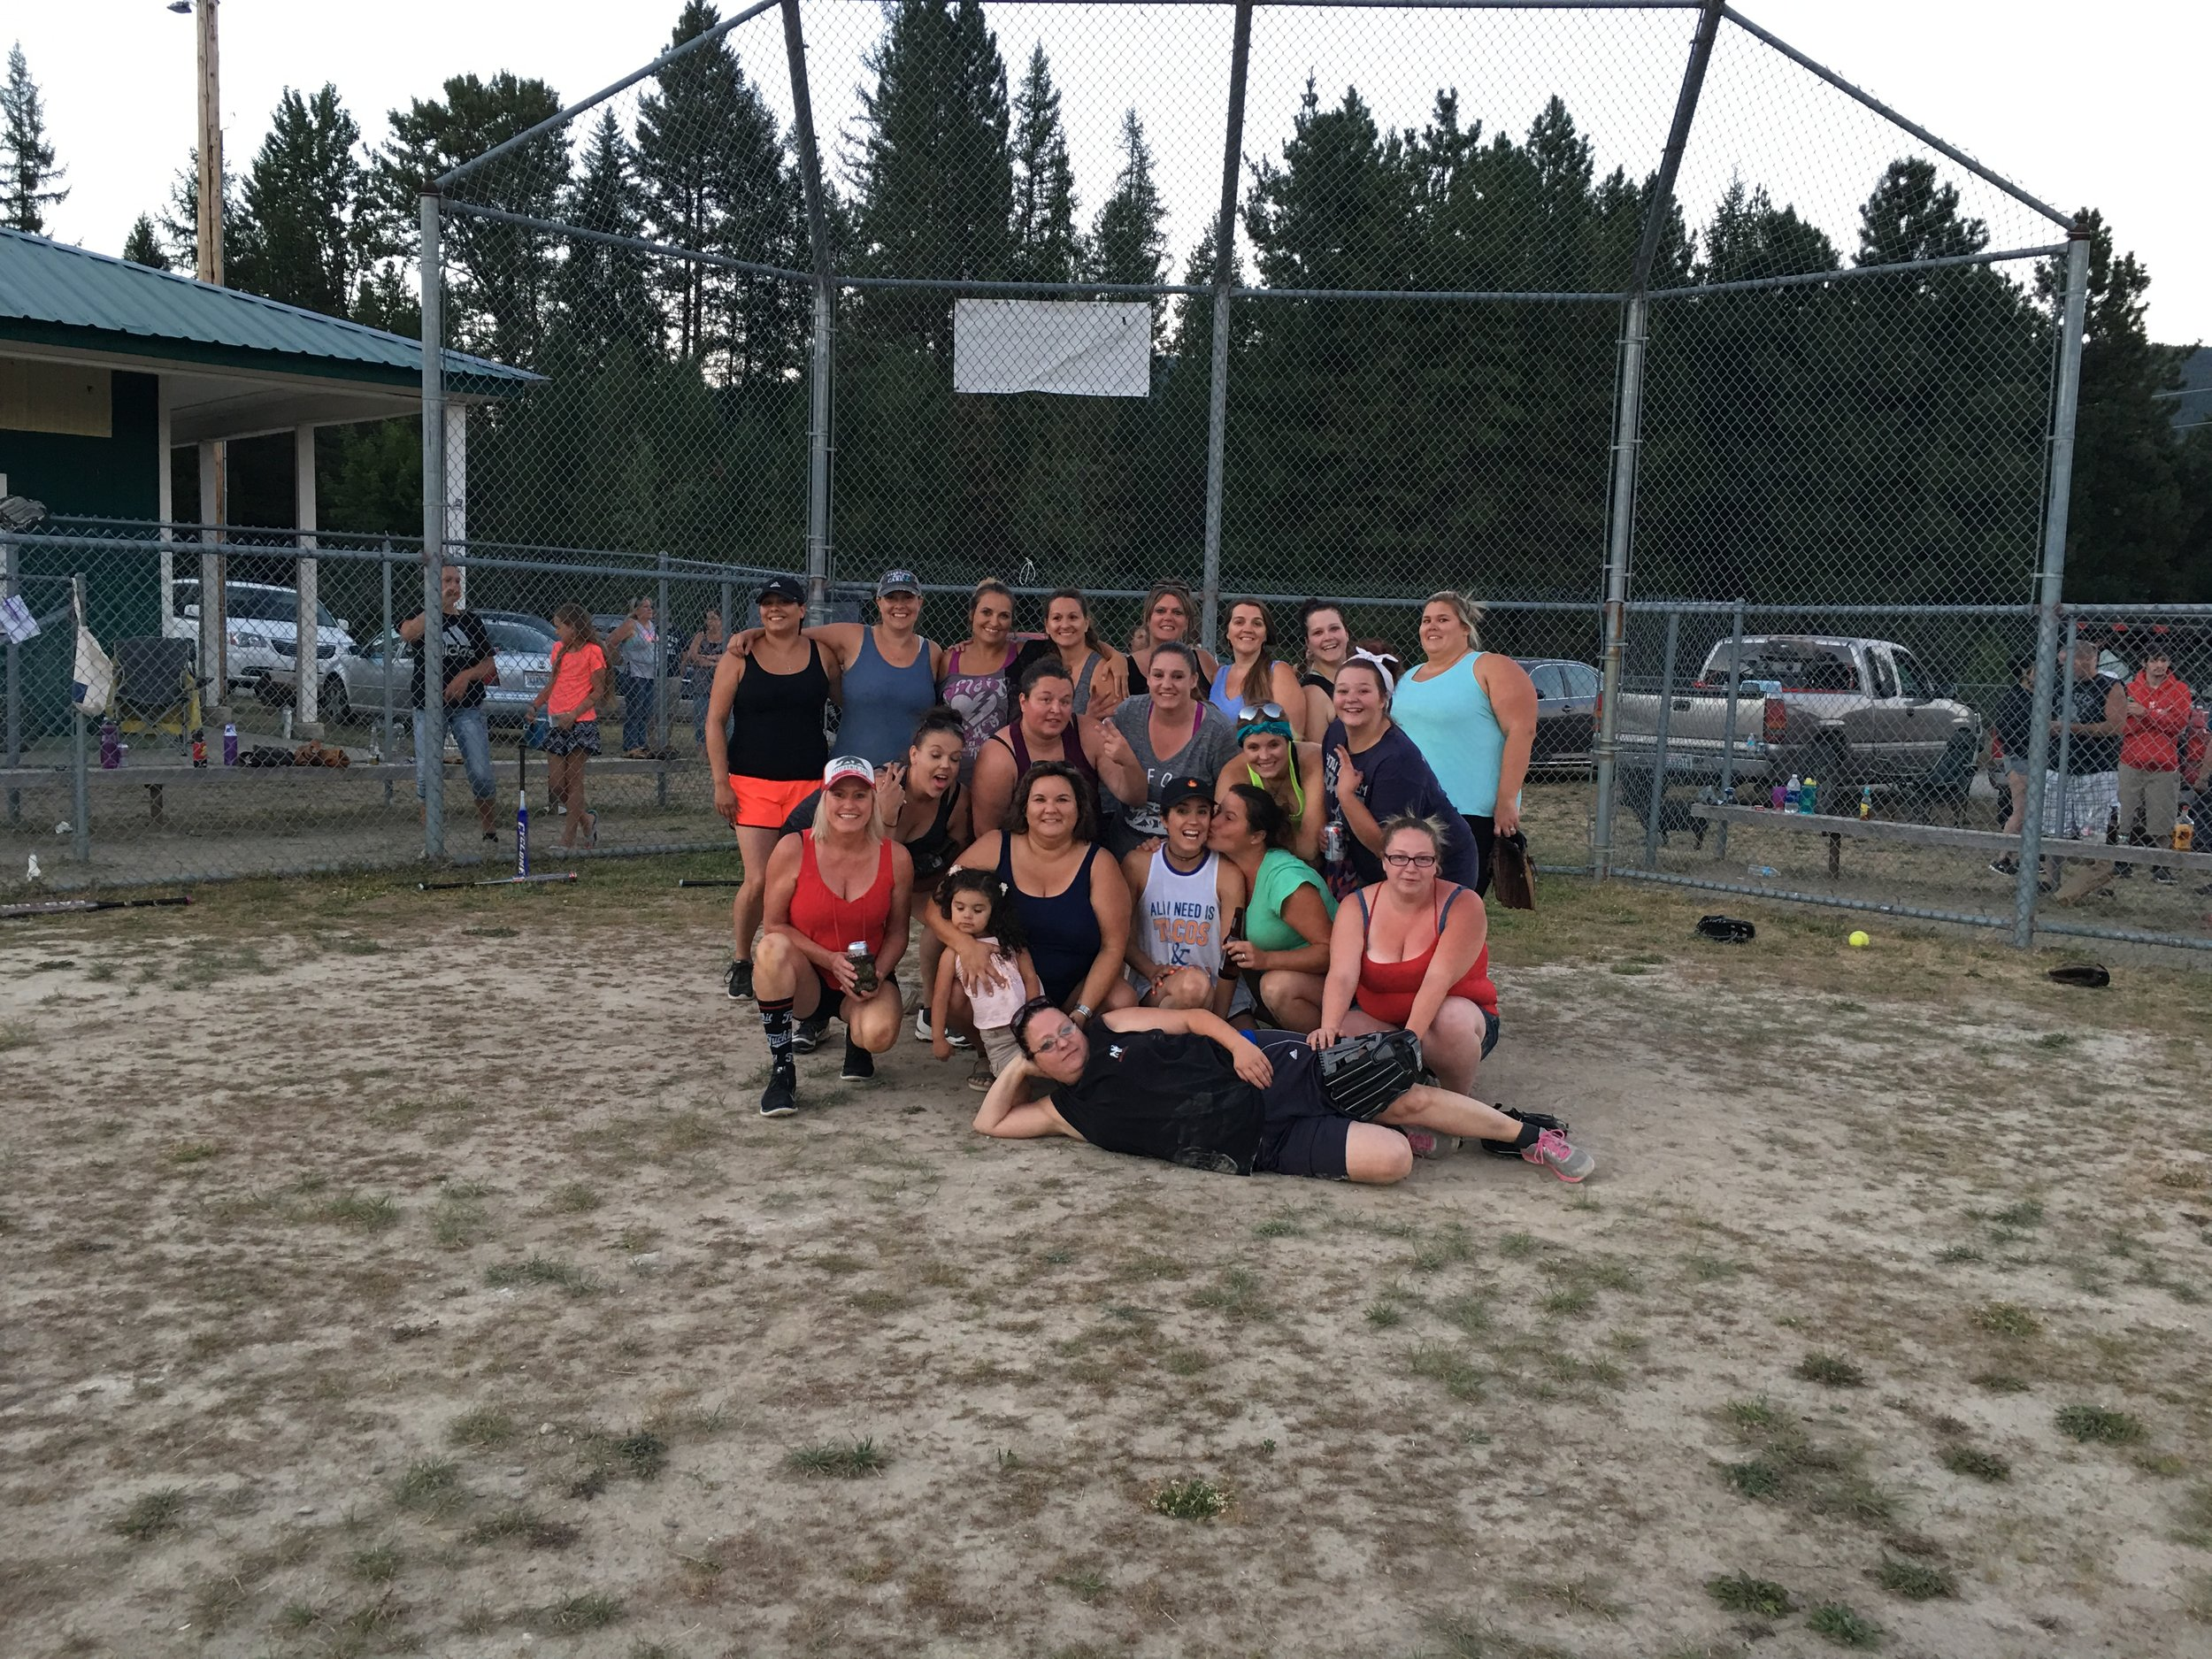 Crazy lady softball at Down River Days. I definitely need to practice before next years game! If you made it to second base, you had to do a shot before taking third. These are my kind of ladies!